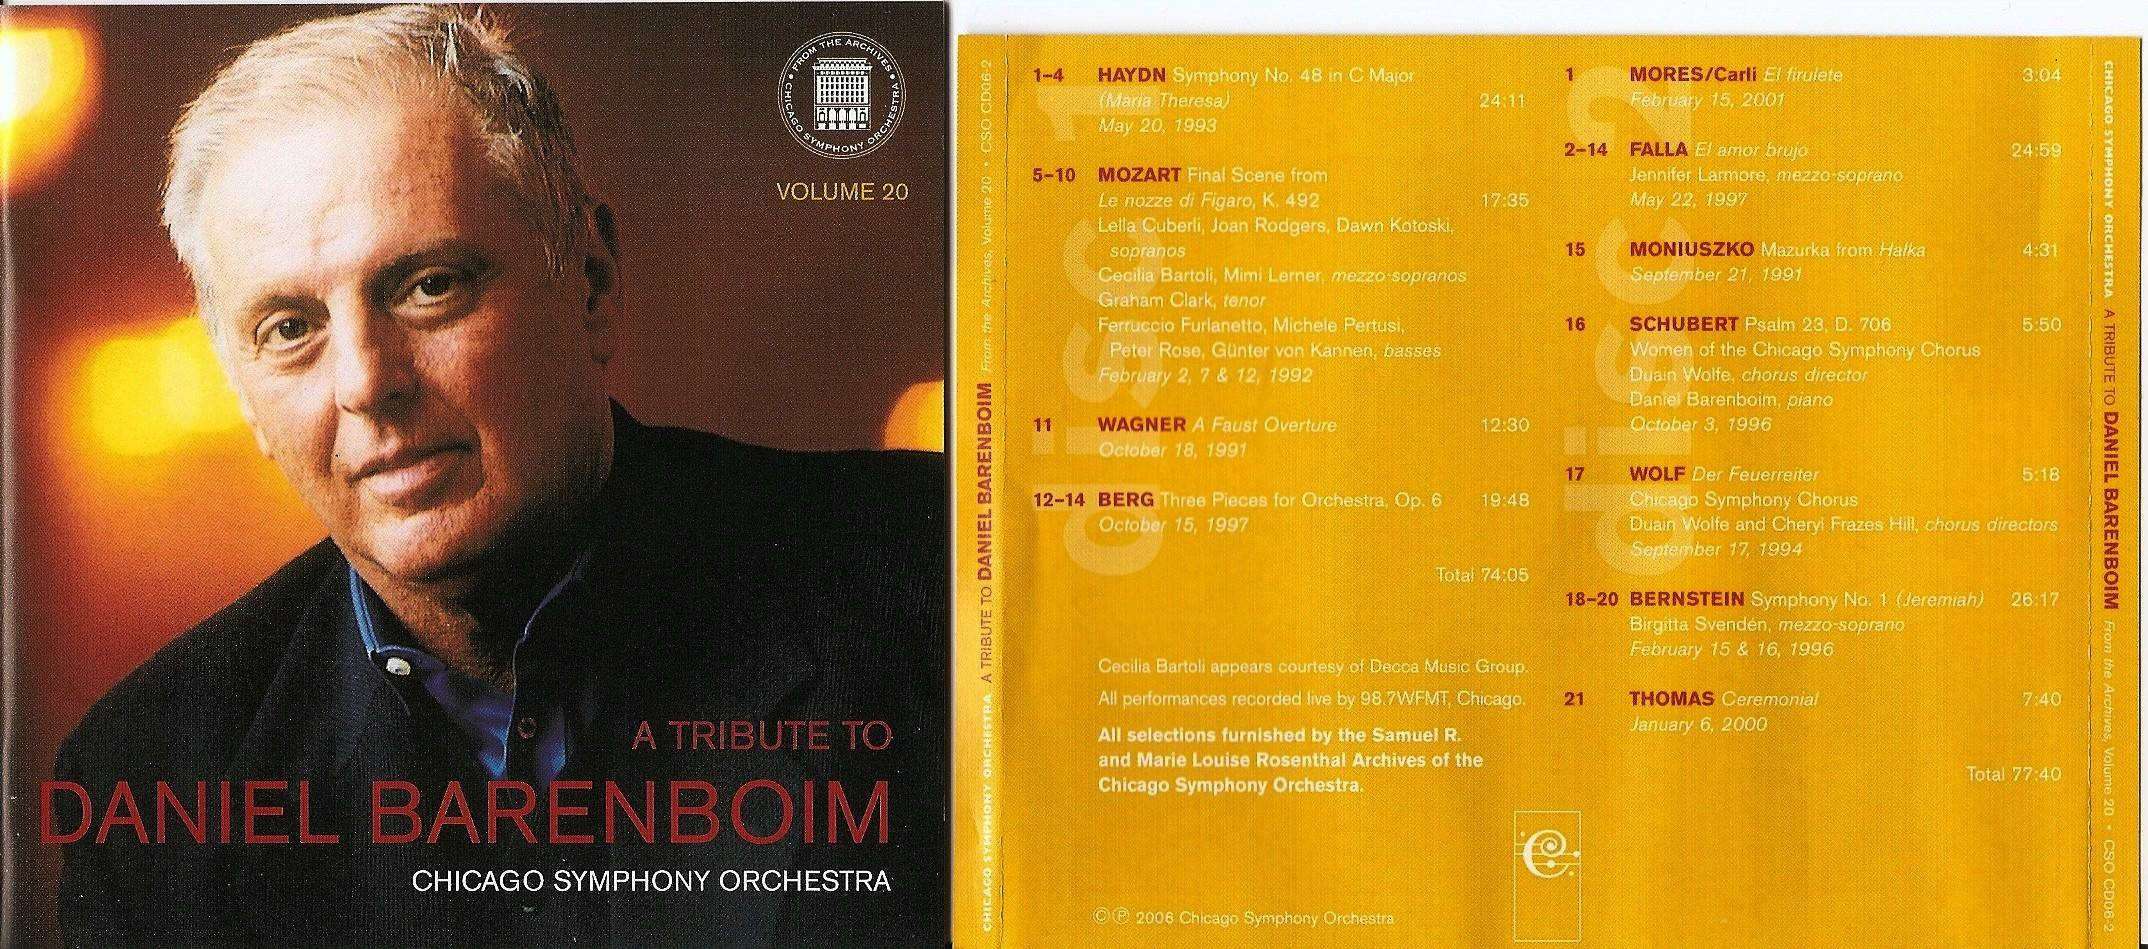 Chicago Symphony Orchestra - From the Archives, Vol.20: A Tribute To Daniel Barenboim, 2-CD set (2006)